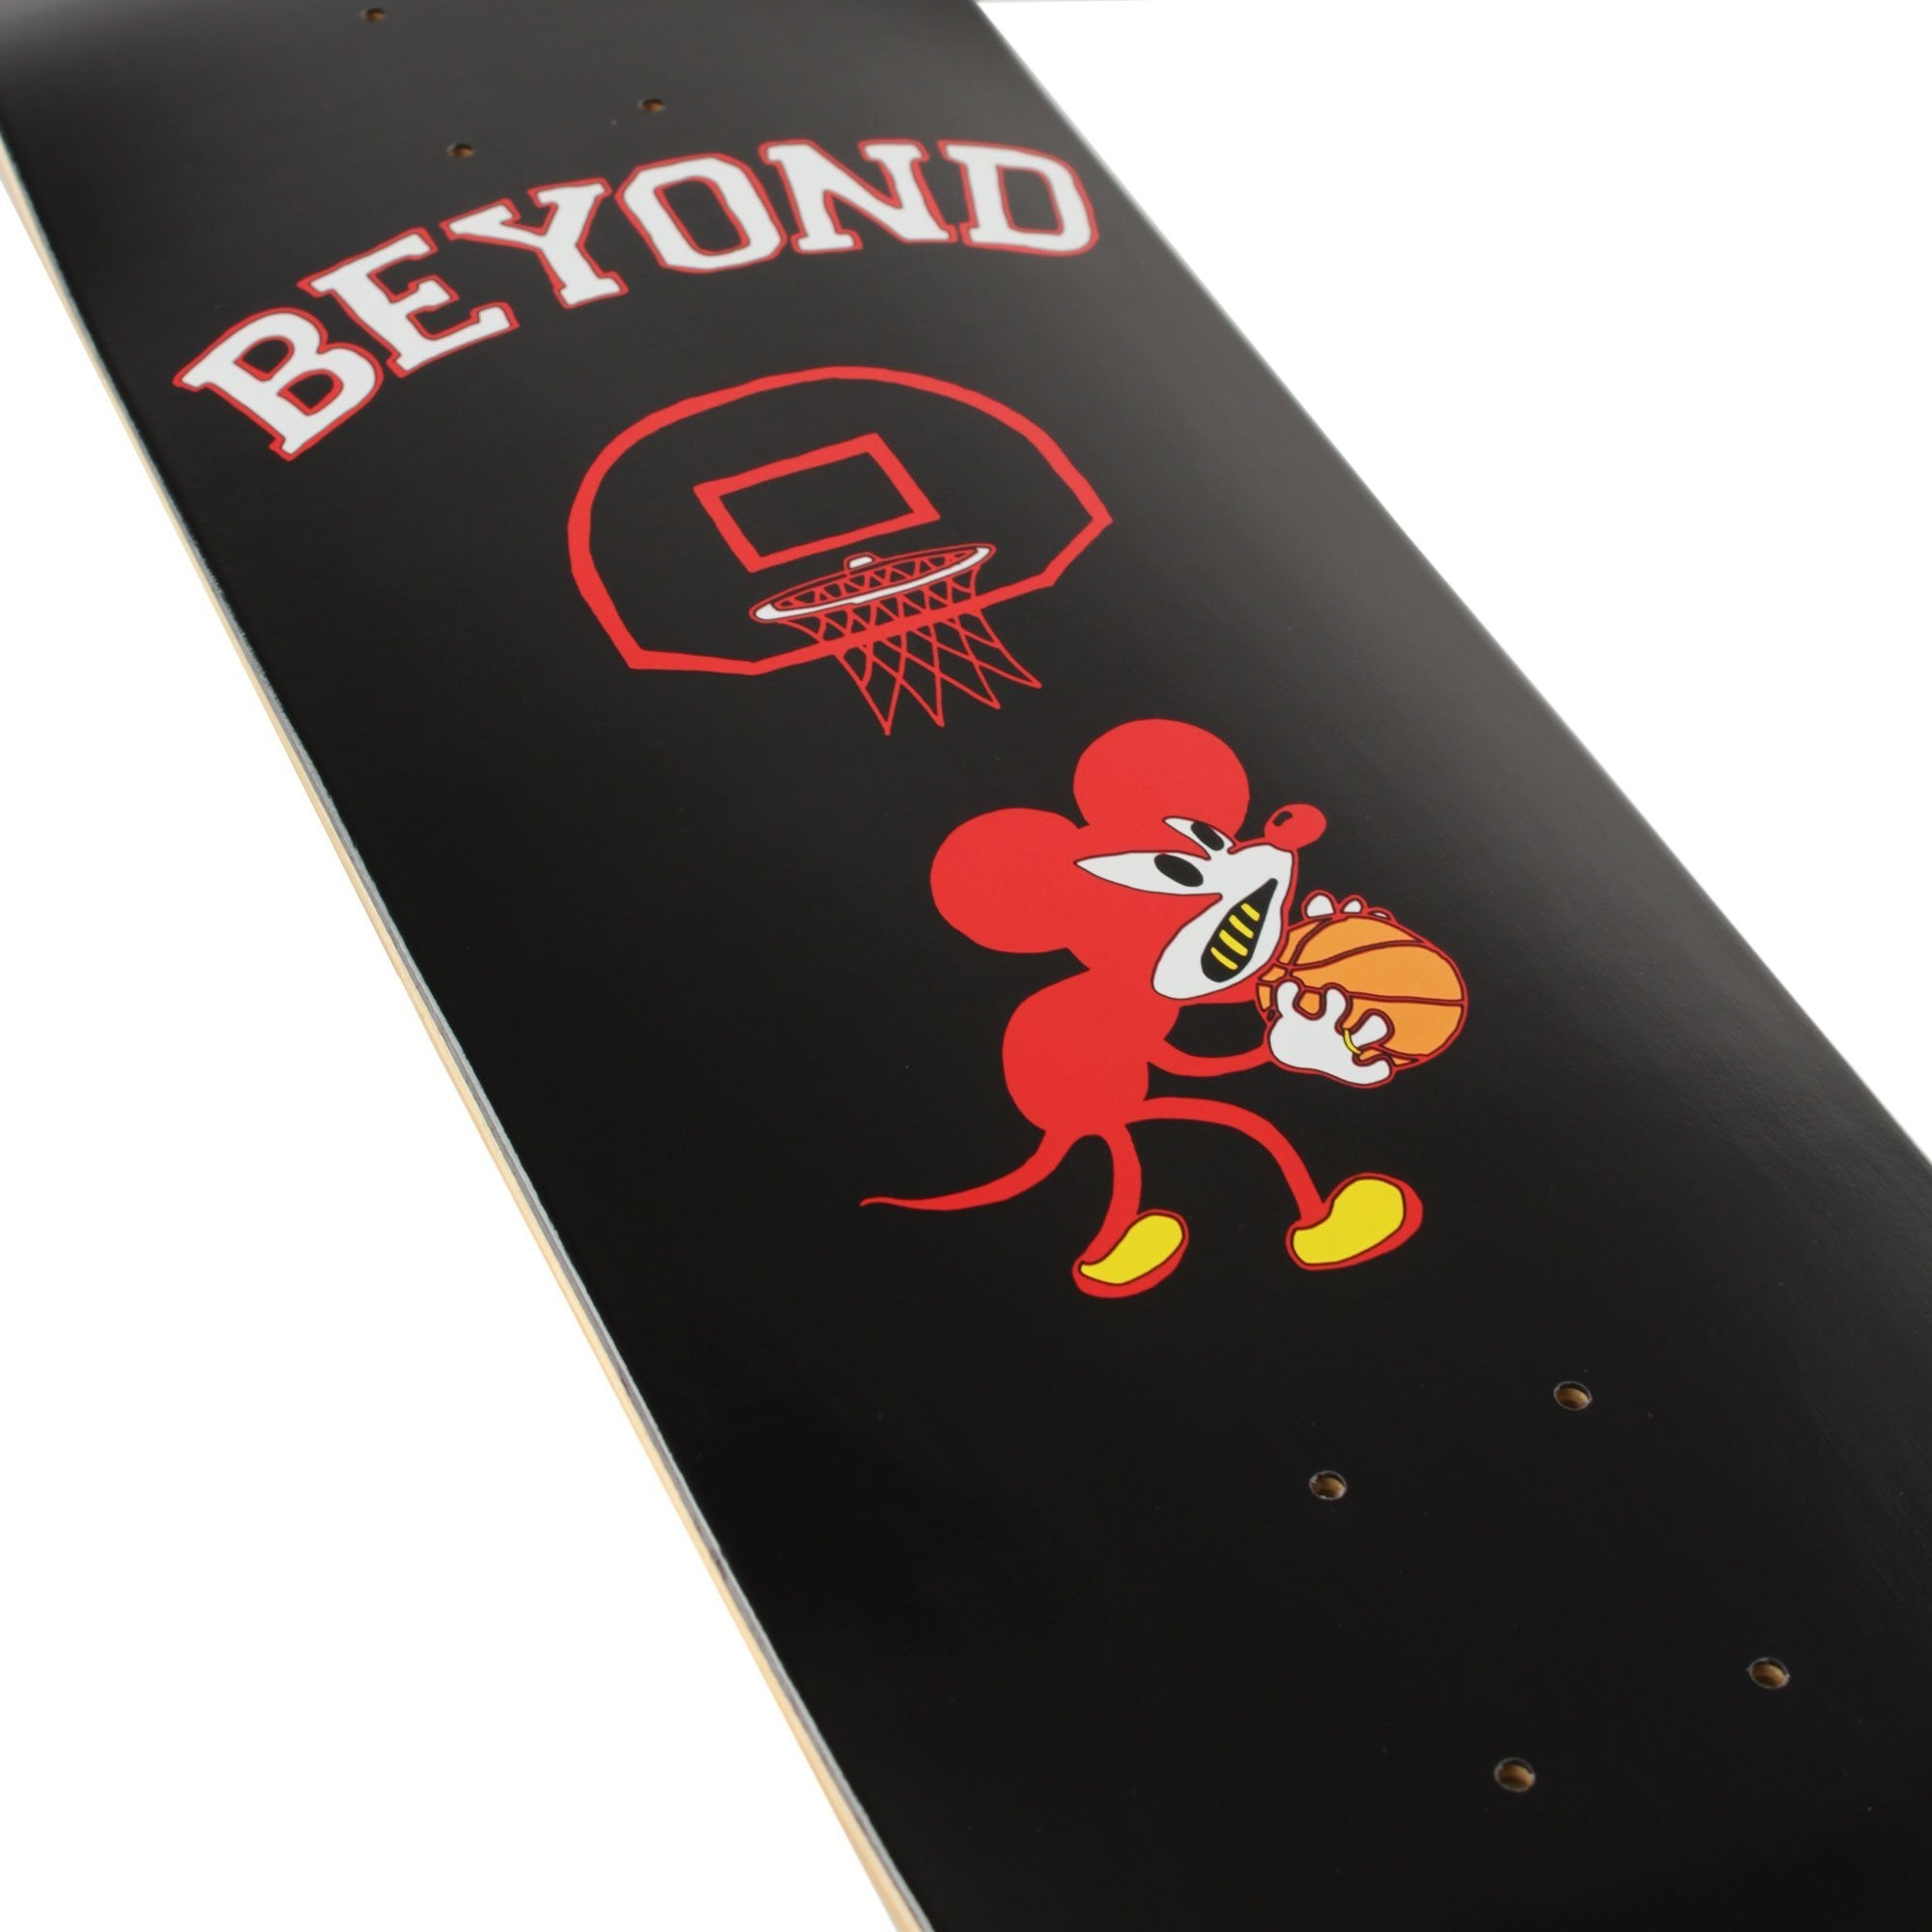 Beyond Rat Ball Deck Product Photo #2